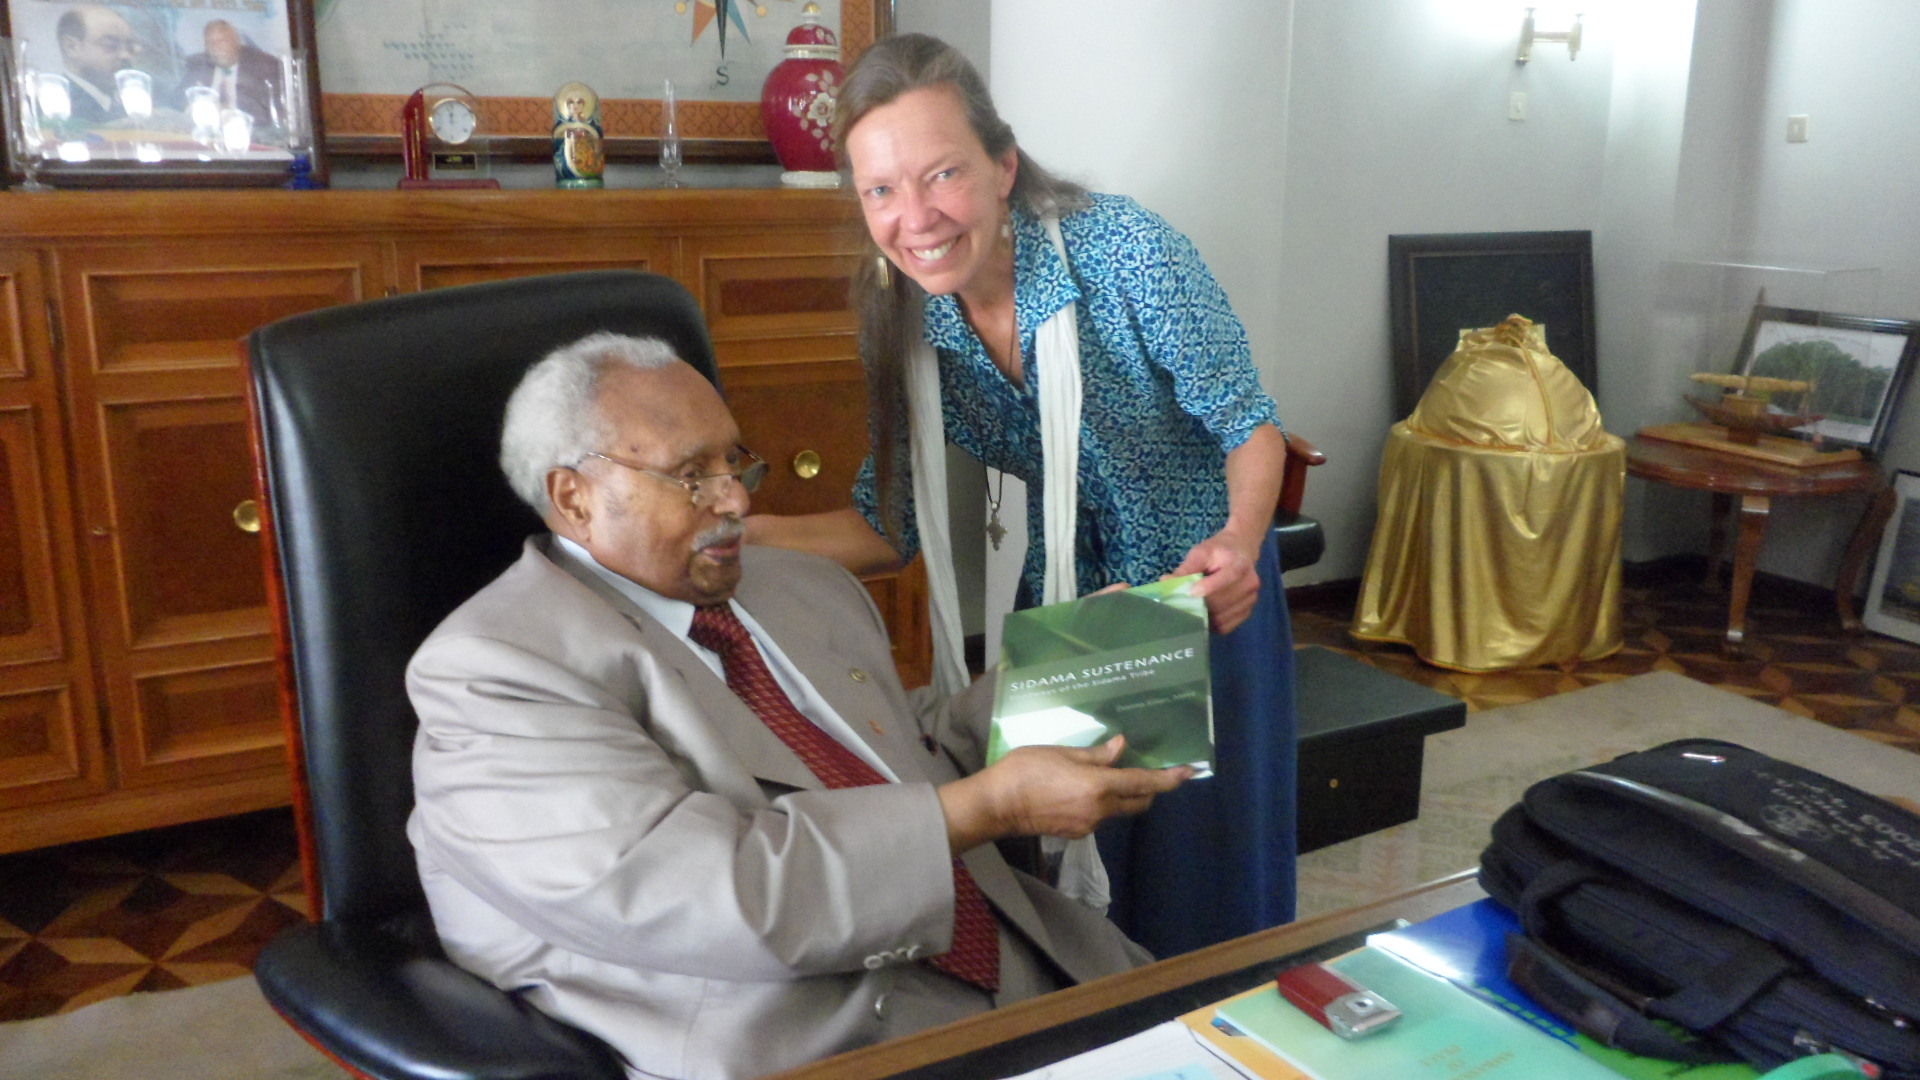 Ethiopia's President Girma receives Donna's book